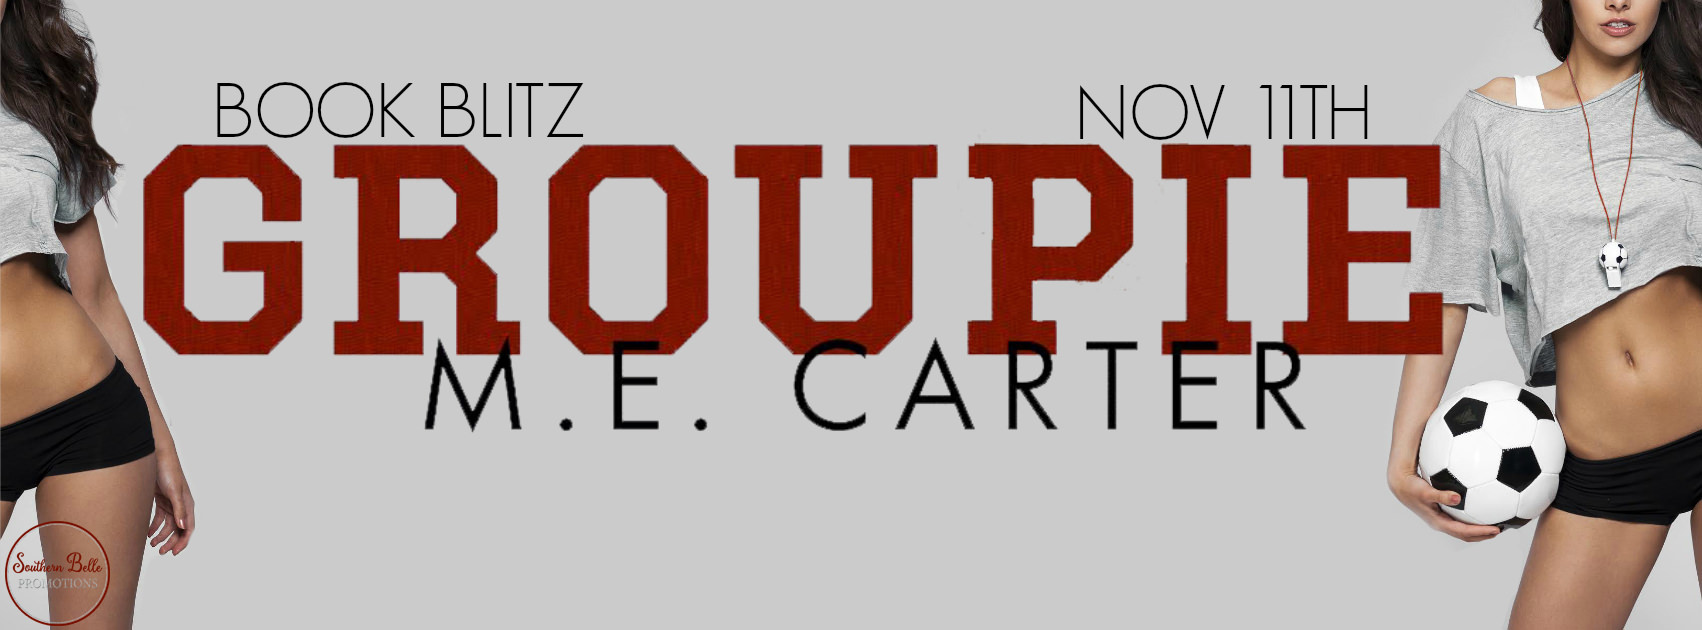 Groupie by M.E. Carter Book Blitz